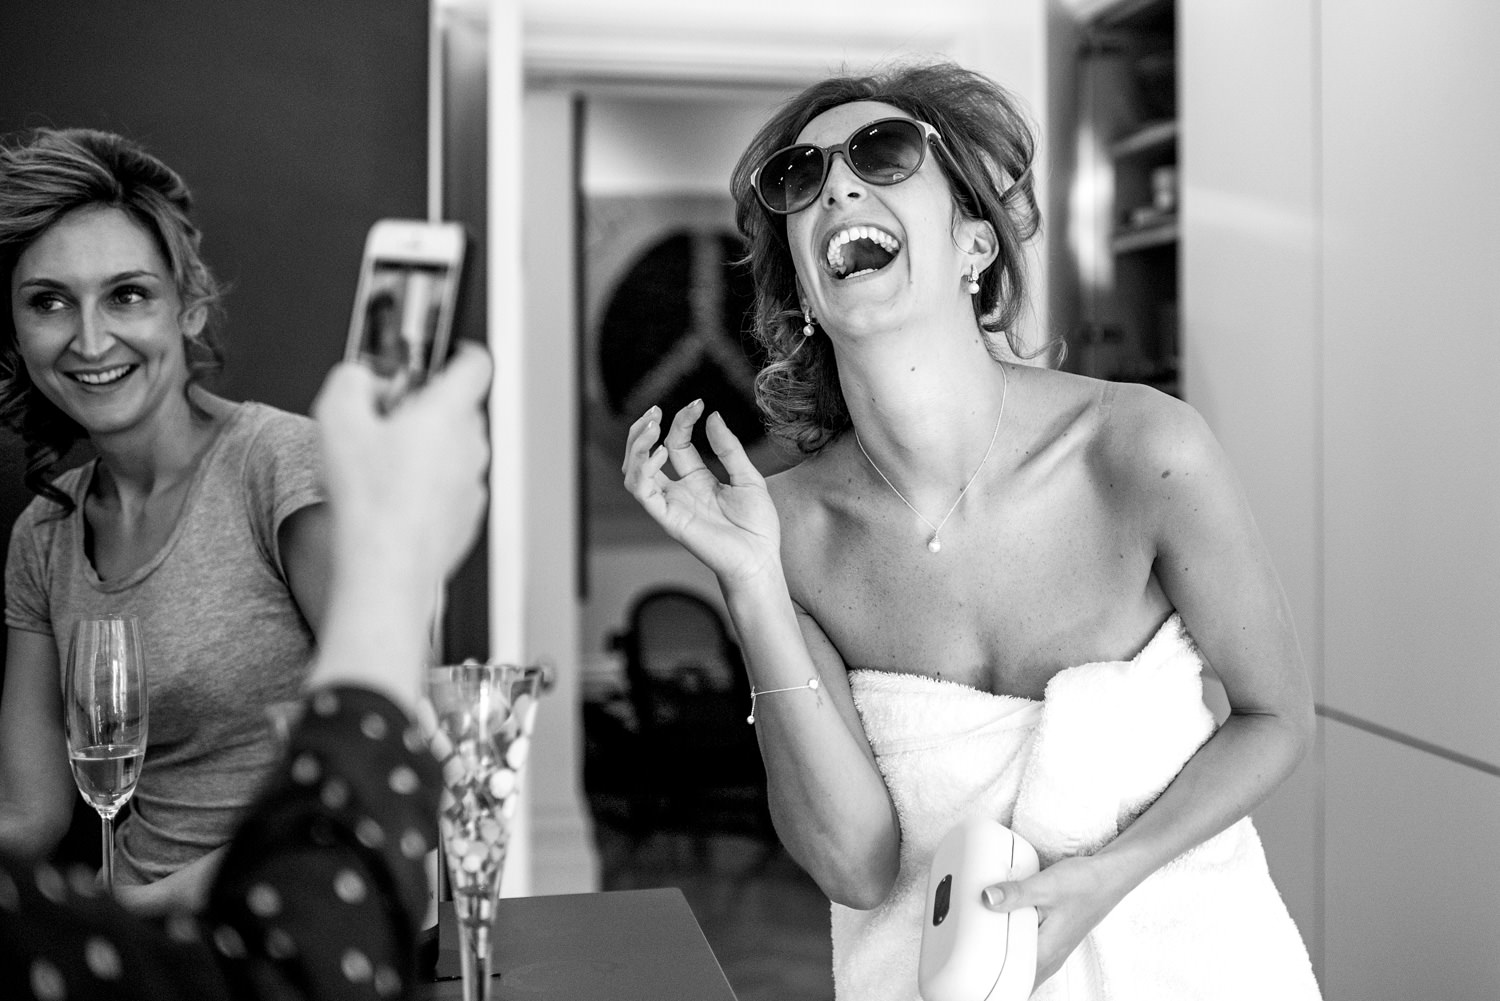 bride in towel laughing with sunglasses on